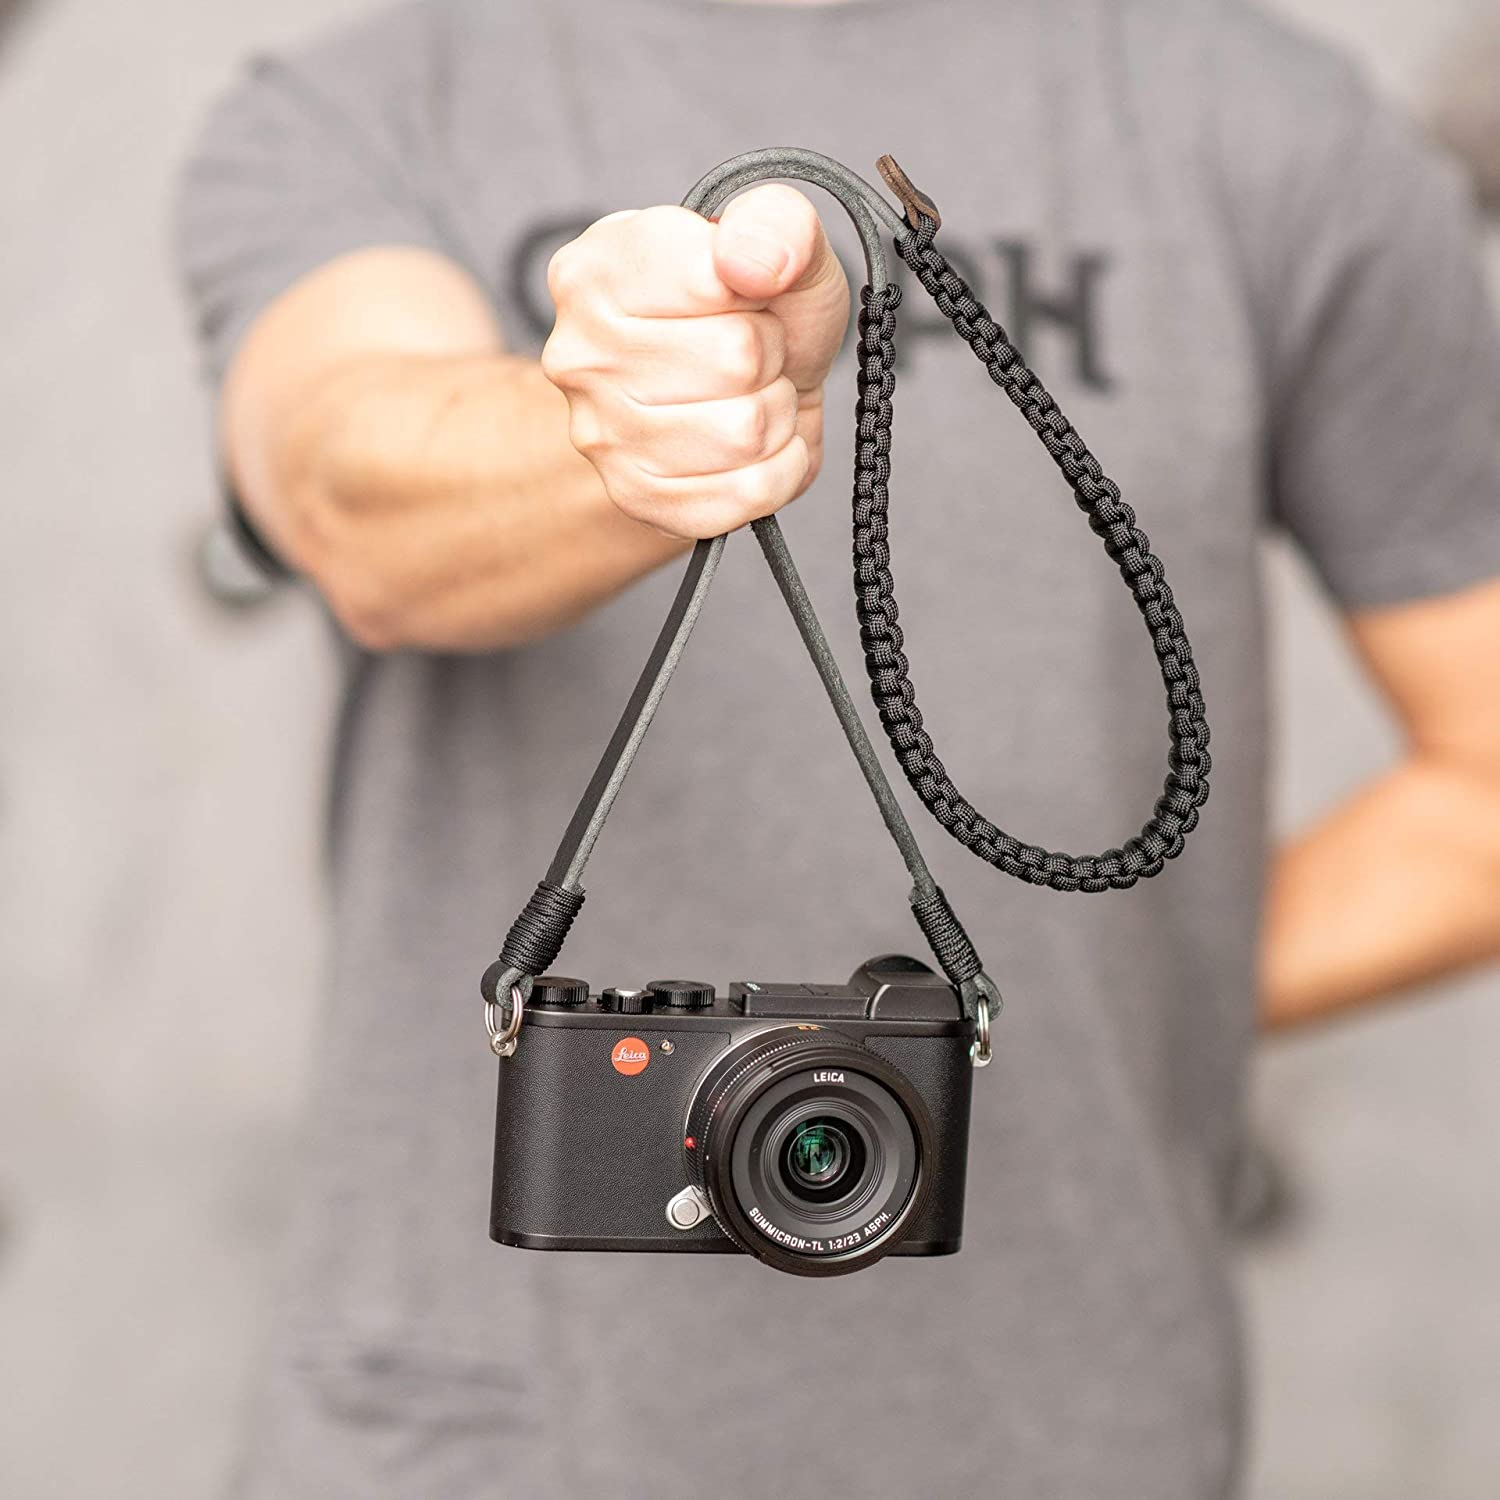 Leica Camera Paracord Strap Black//Black Neck Strap Shoulder Strap Created by COOPH 126cm for Leica Sony Canon Nikon DSLR Mirrorless Cameras Made from Paracord Rope and German Leather